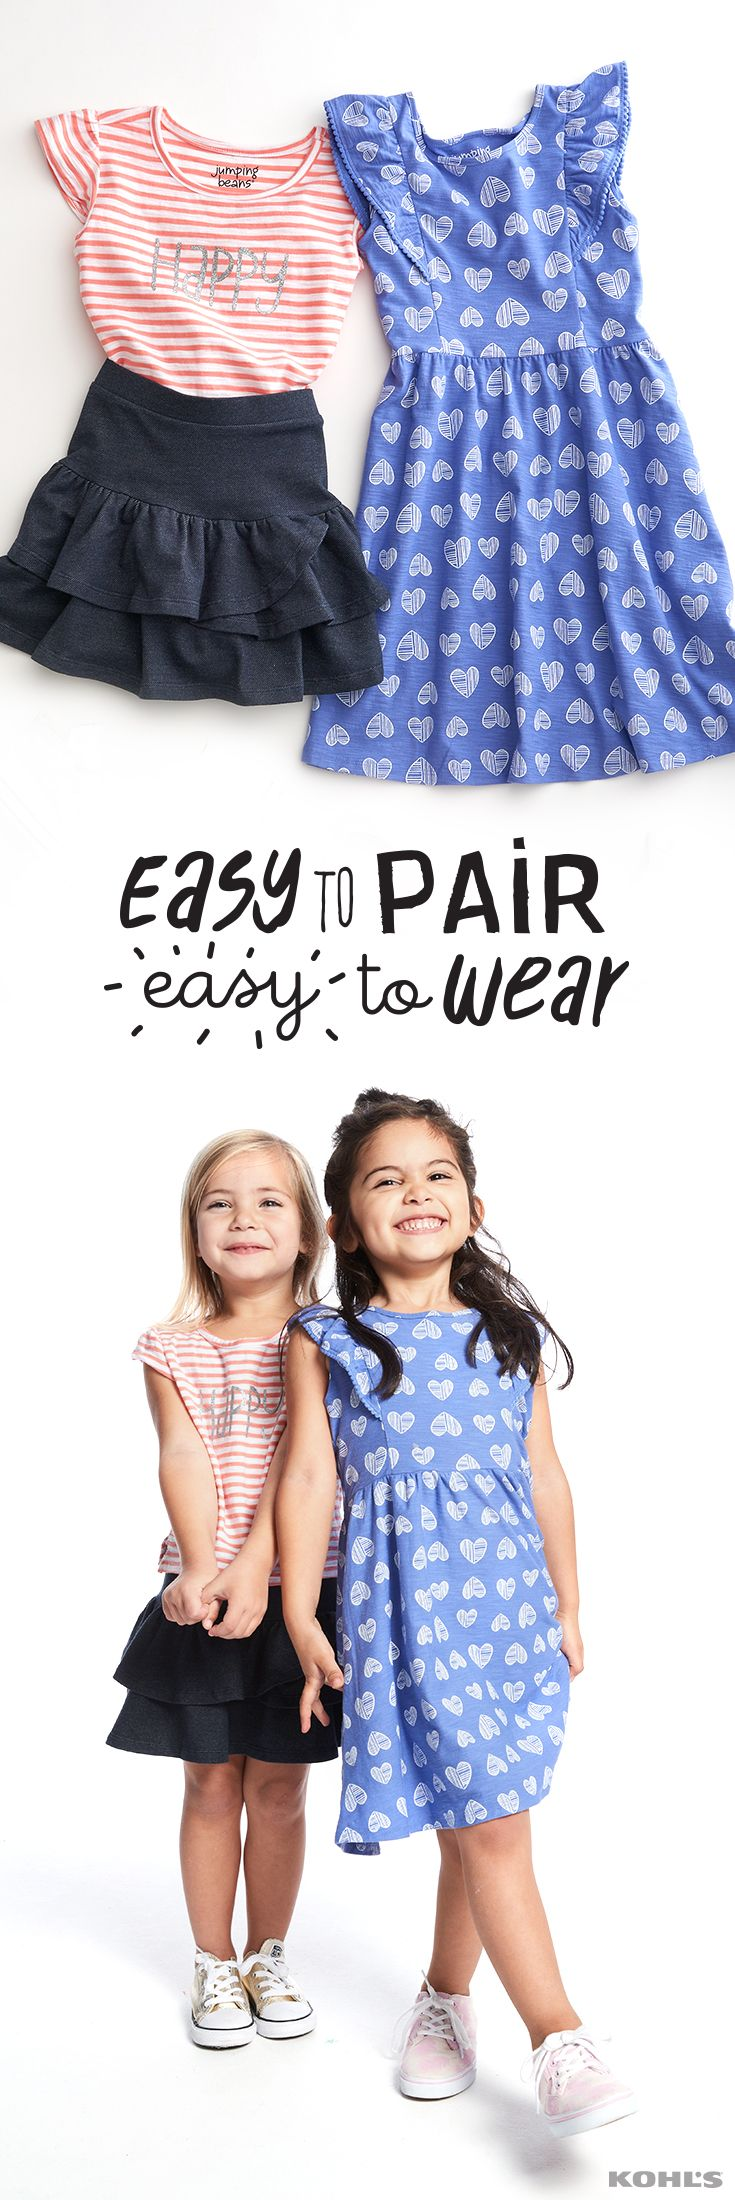 It's always a good day to play. And with dresses and skirts that are as perfect for playing as these (and at perfectly great prices), your girl will always look and feel good. Get easy to pair, easy to wear Jumping Beans clothes for kids at Kohl's.